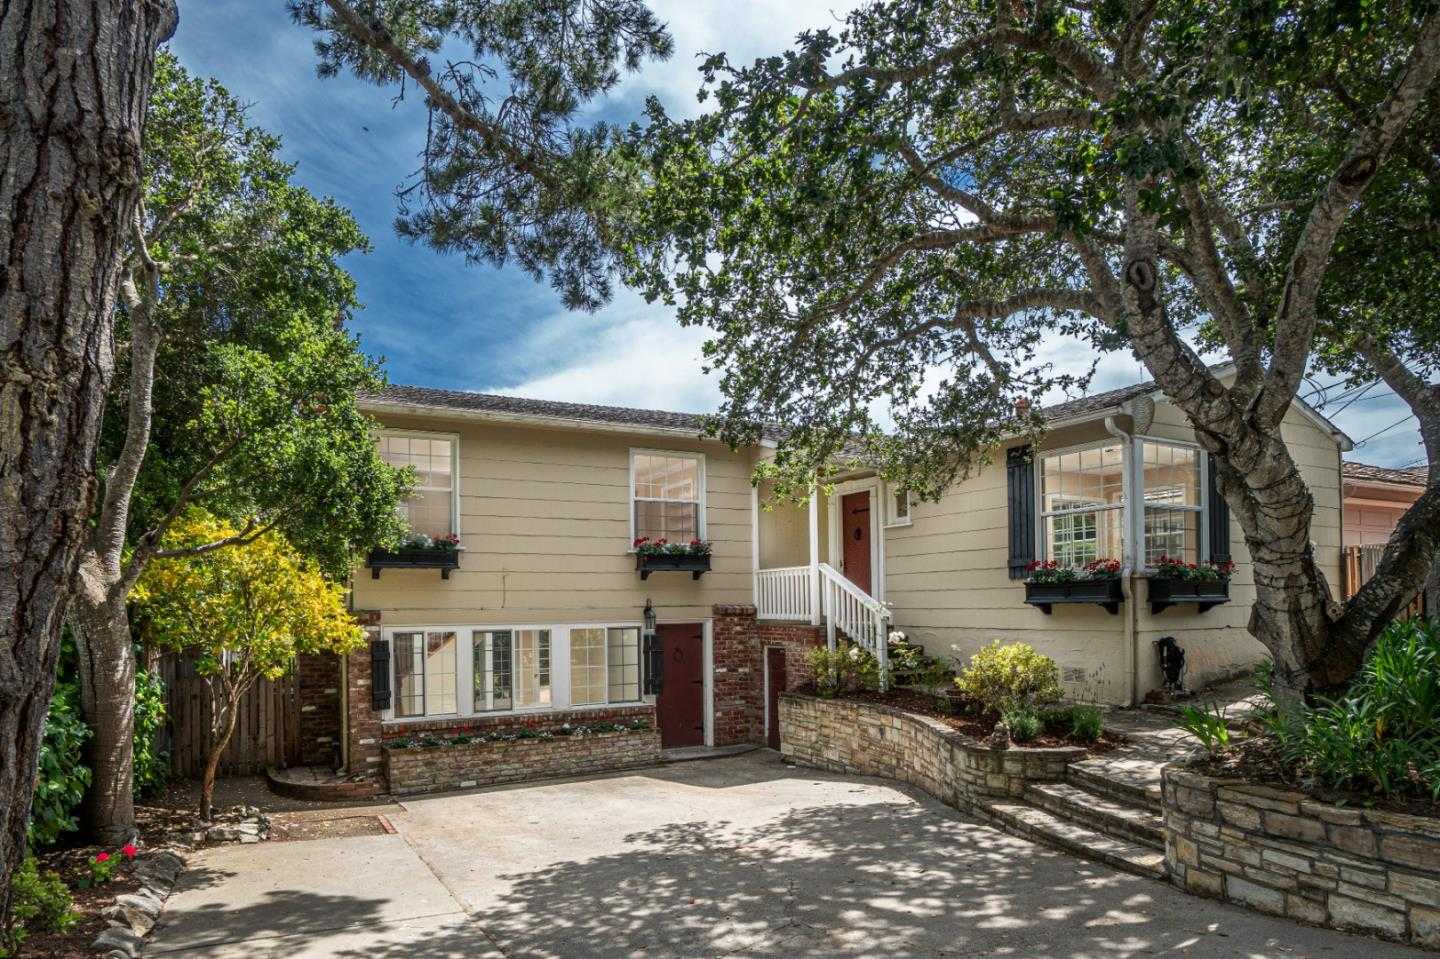 $1,225,000 - 3Br/2Ba -  for Sale in Carmel